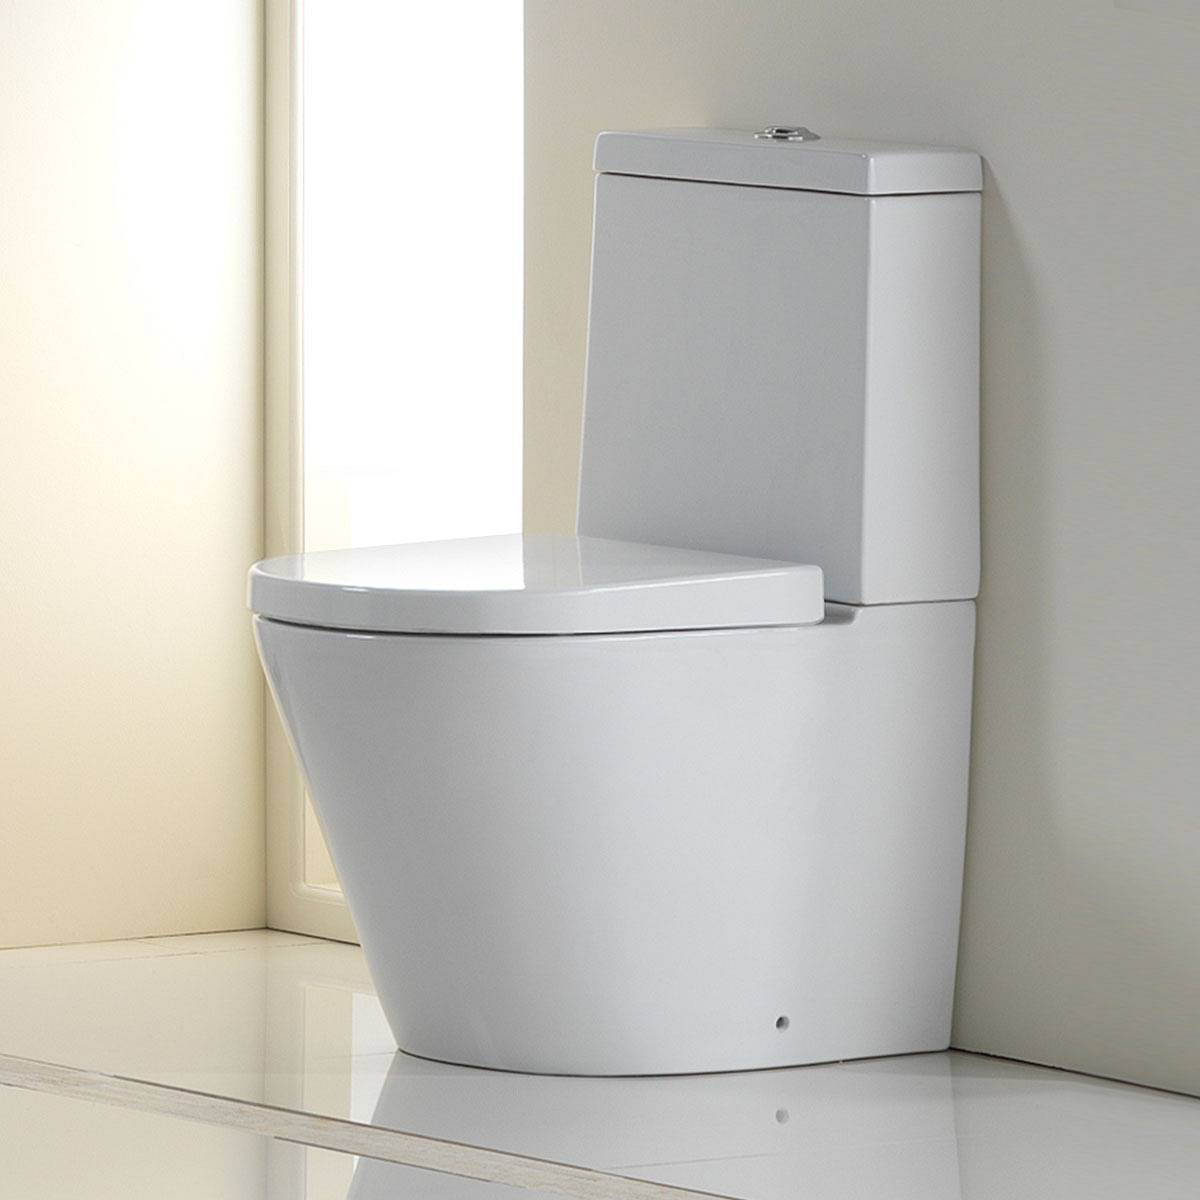 Image of Lloret Close Coupled Toilet Inc Soft Close Seat